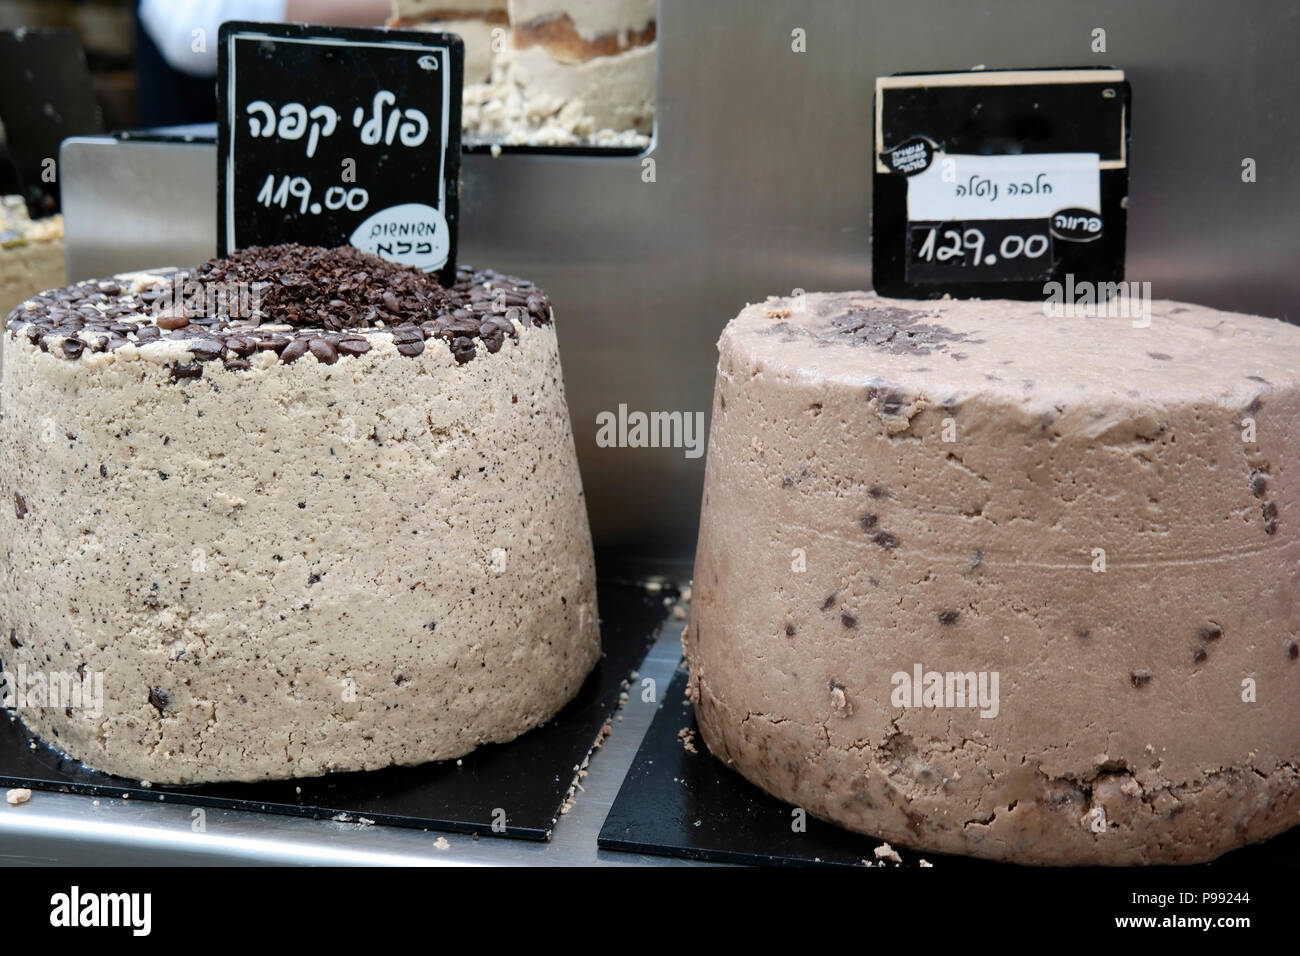 Big pieces of halva 'Halva with coffee beans' 'made of whole sesame' on s market stand - Stock Image